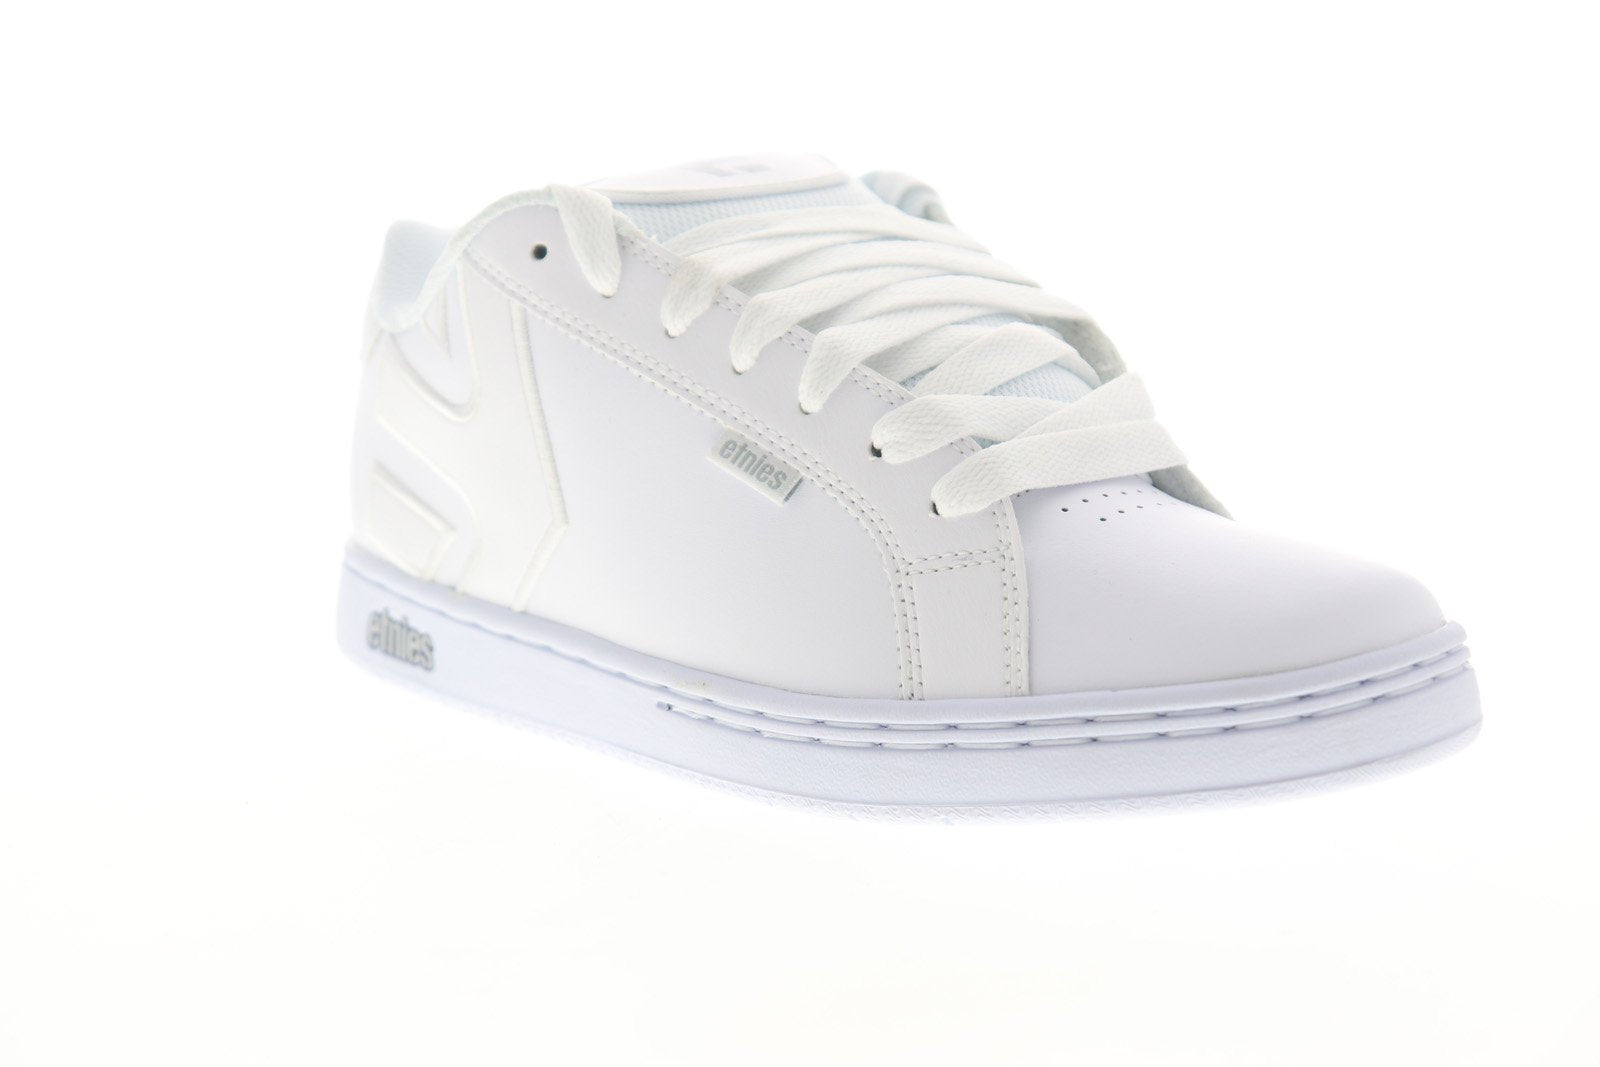 Etnies Fader 4101000203106 Mens White Leather Lace Up Athletic Skate S -  Ruze Shoes